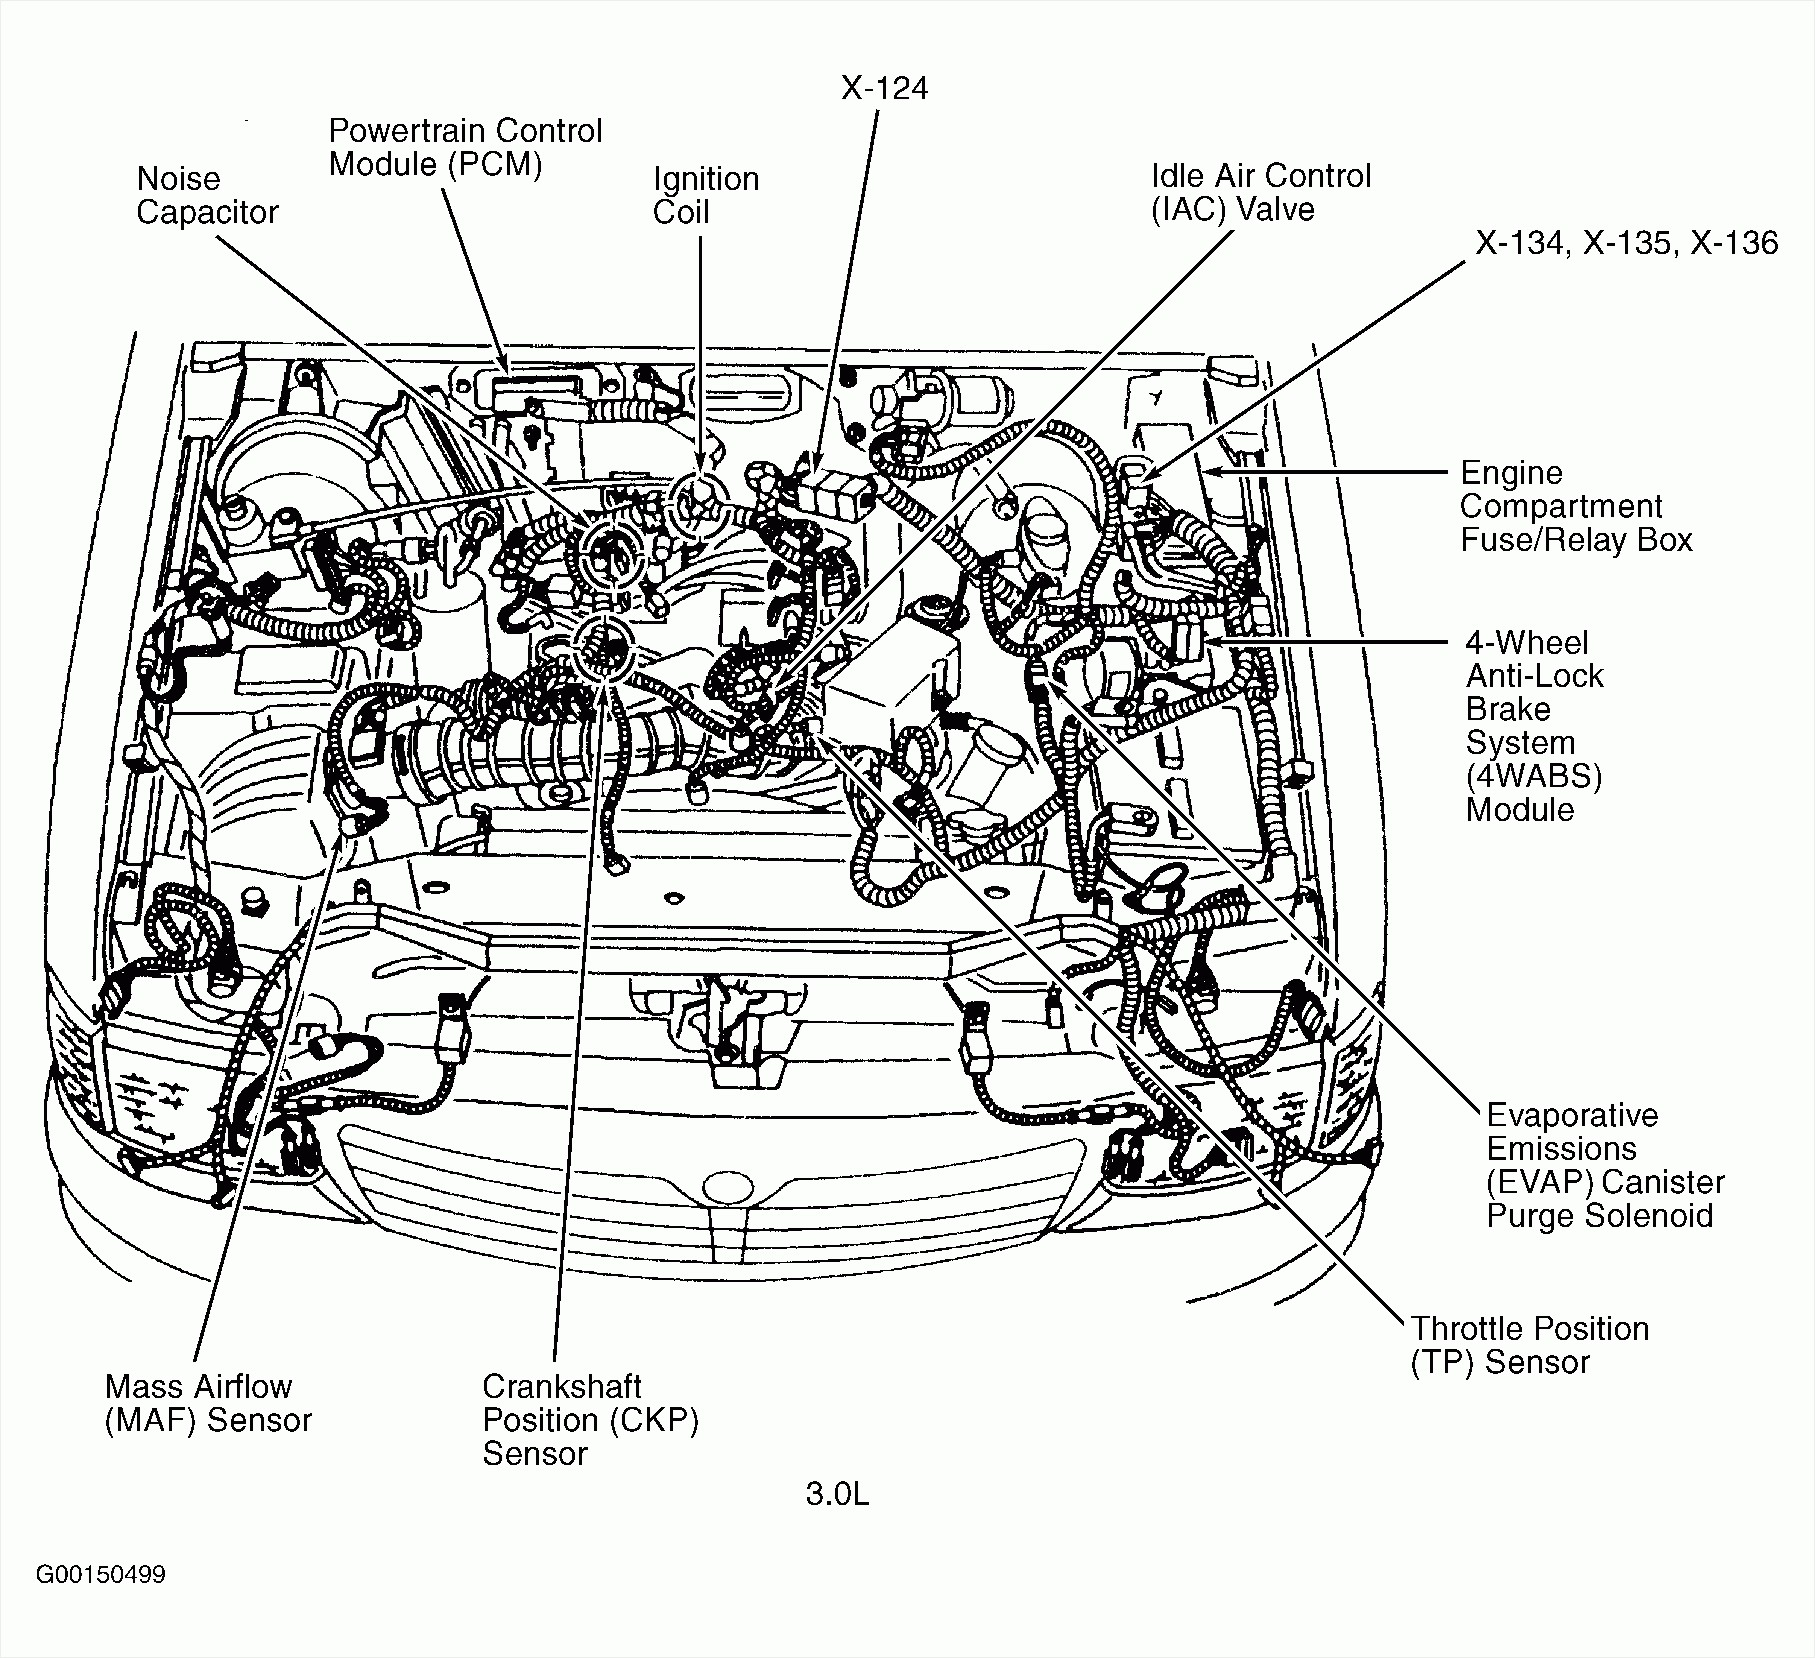 hight resolution of 2008 volkswagen jetta engine diagram wiring diagram show 2008 vw jetta engine diagram 2008 jetta engine diagram